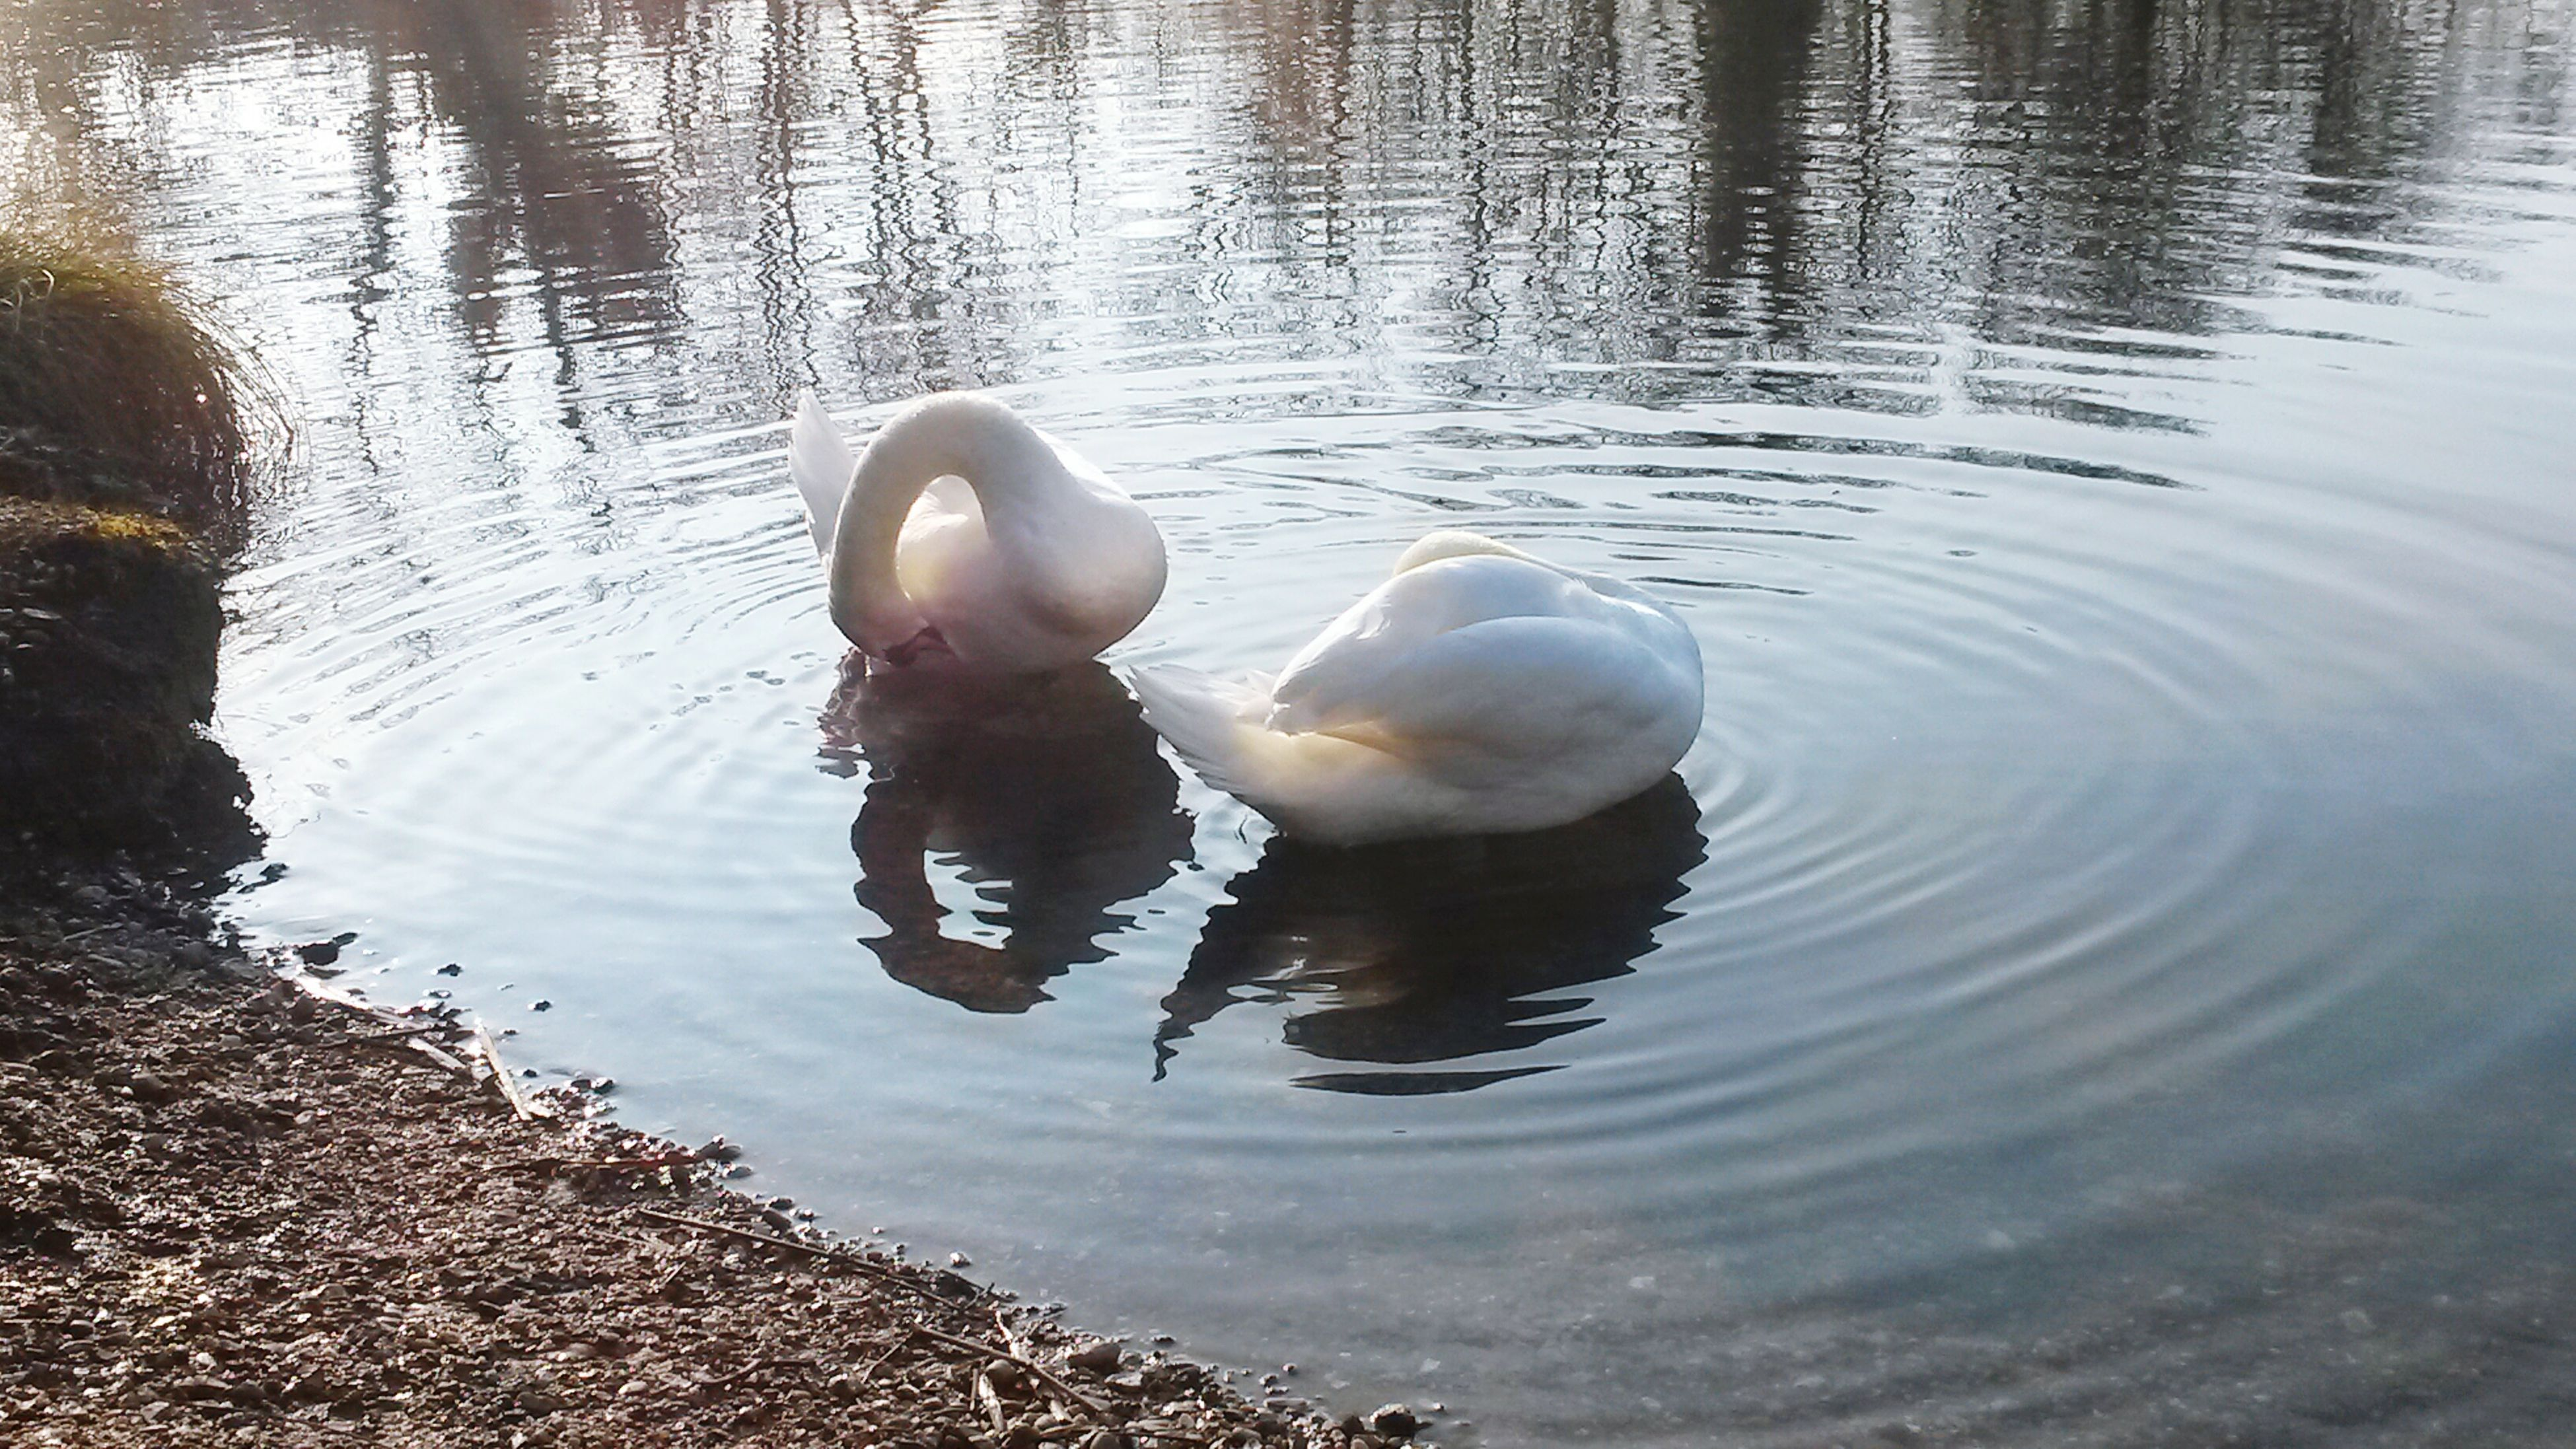 water, bird, lake, animal themes, animals in the wild, swimming, swan, wildlife, reflection, duck, rippled, water bird, waterfront, high angle view, nature, floating on water, two animals, outdoors, day, beauty in nature